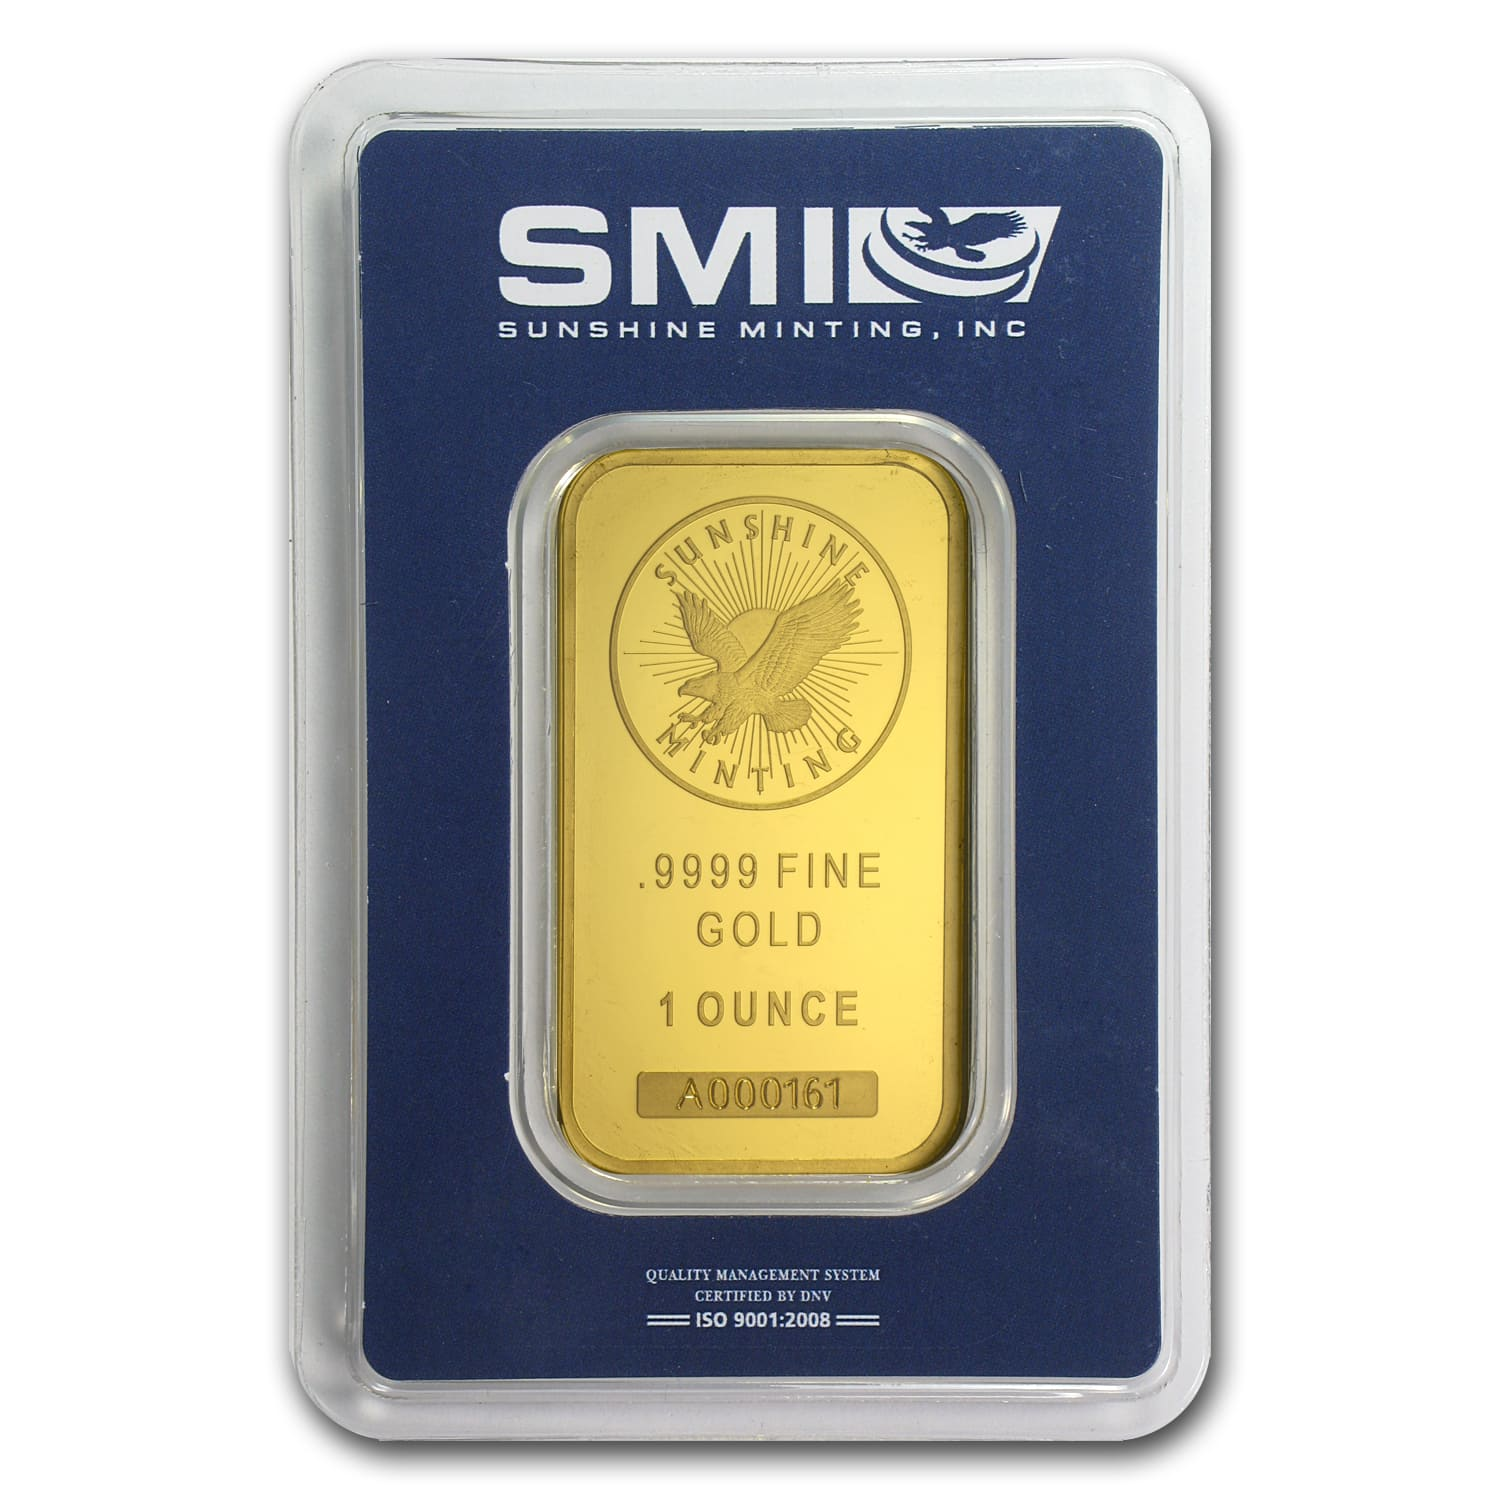 1 oz Gold Bar - Sunshine Minting (New Design in TEP Packaging)